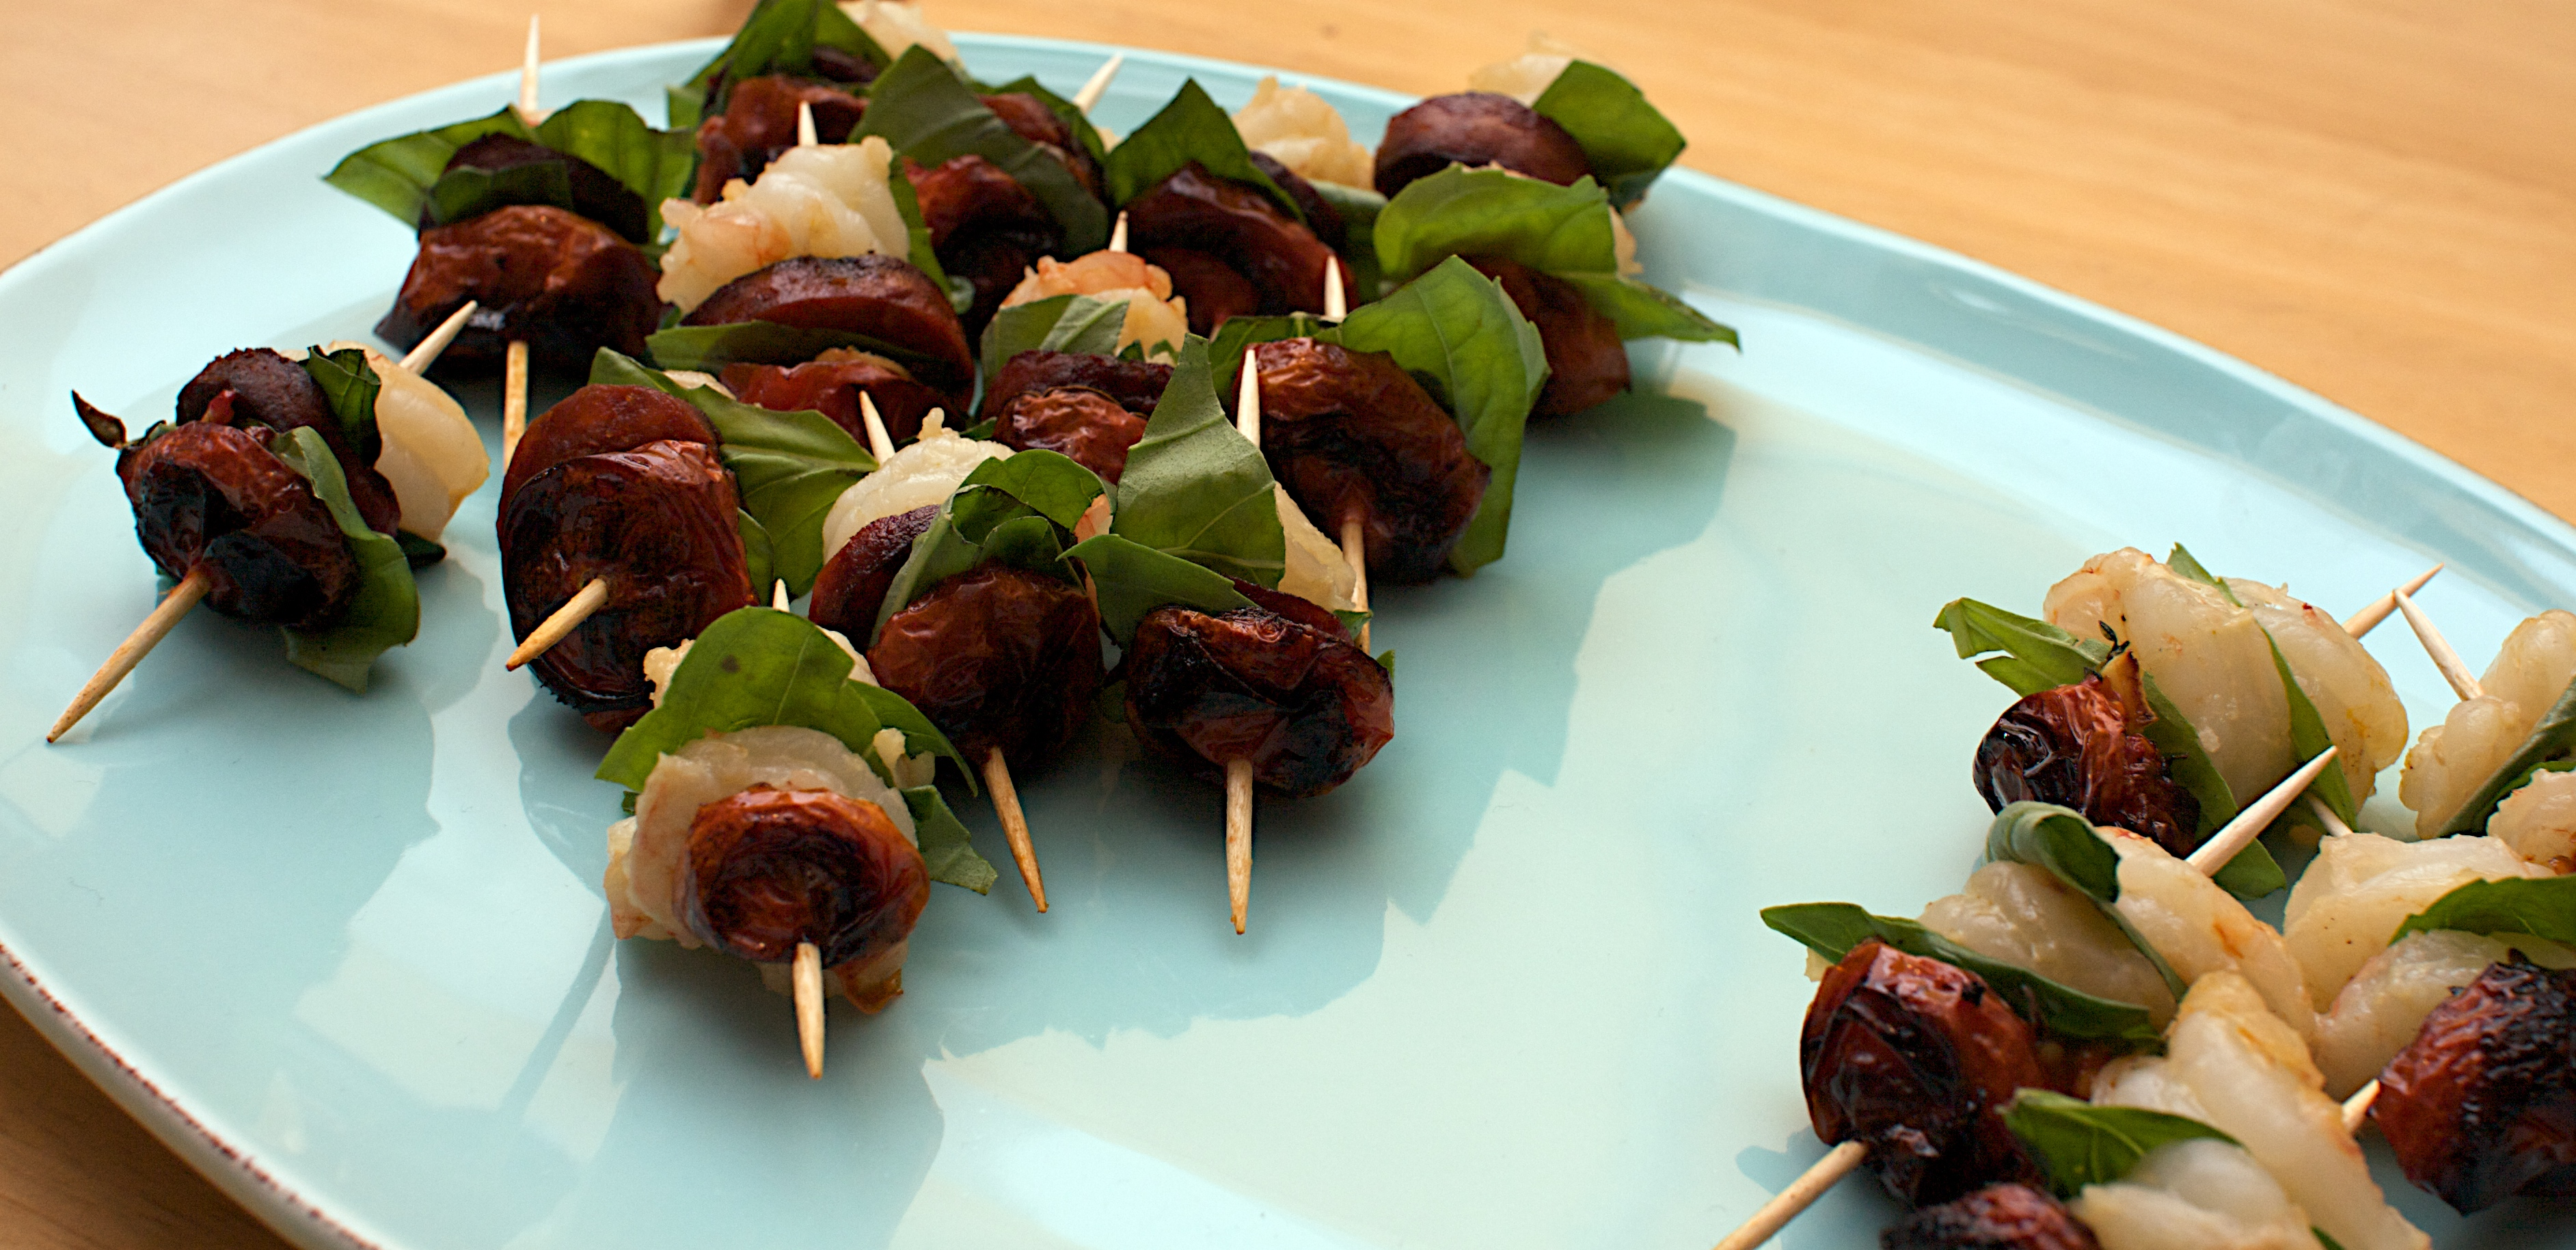 Recipe for Canape on Skewers